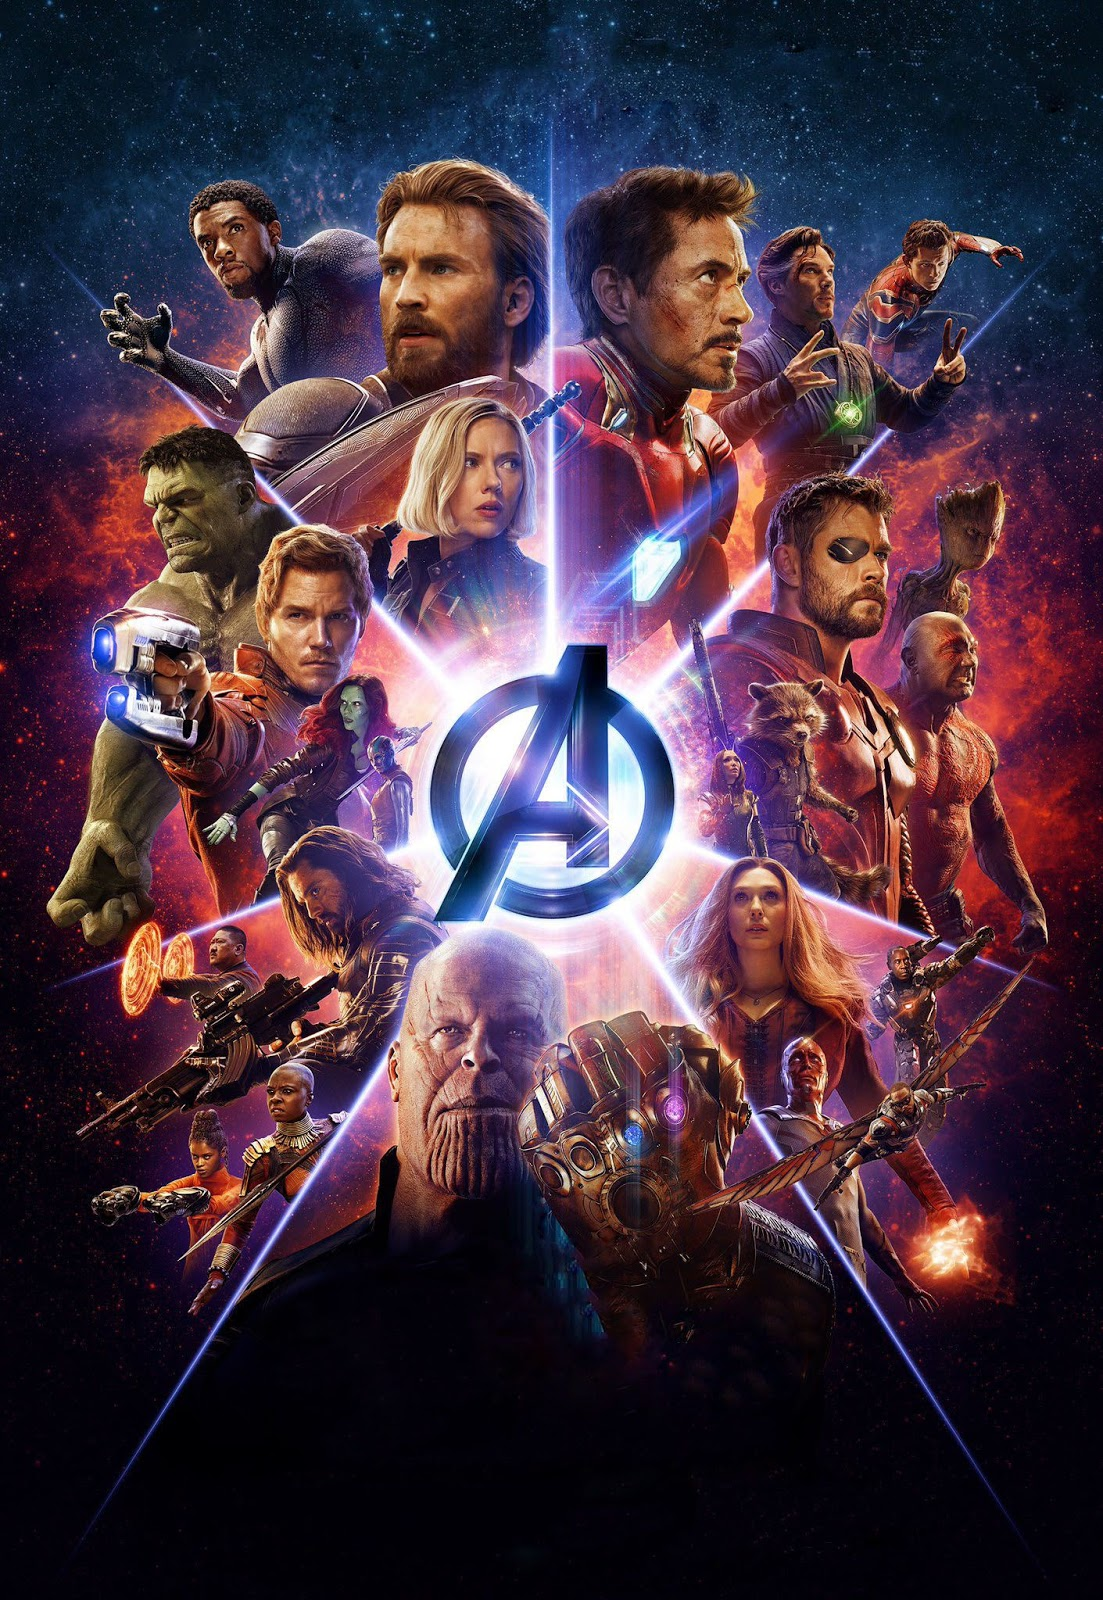 Avengers 4 End Game And Infinity War HD Wallpapers Download In 4K Iron Man, Captain Marvel ...